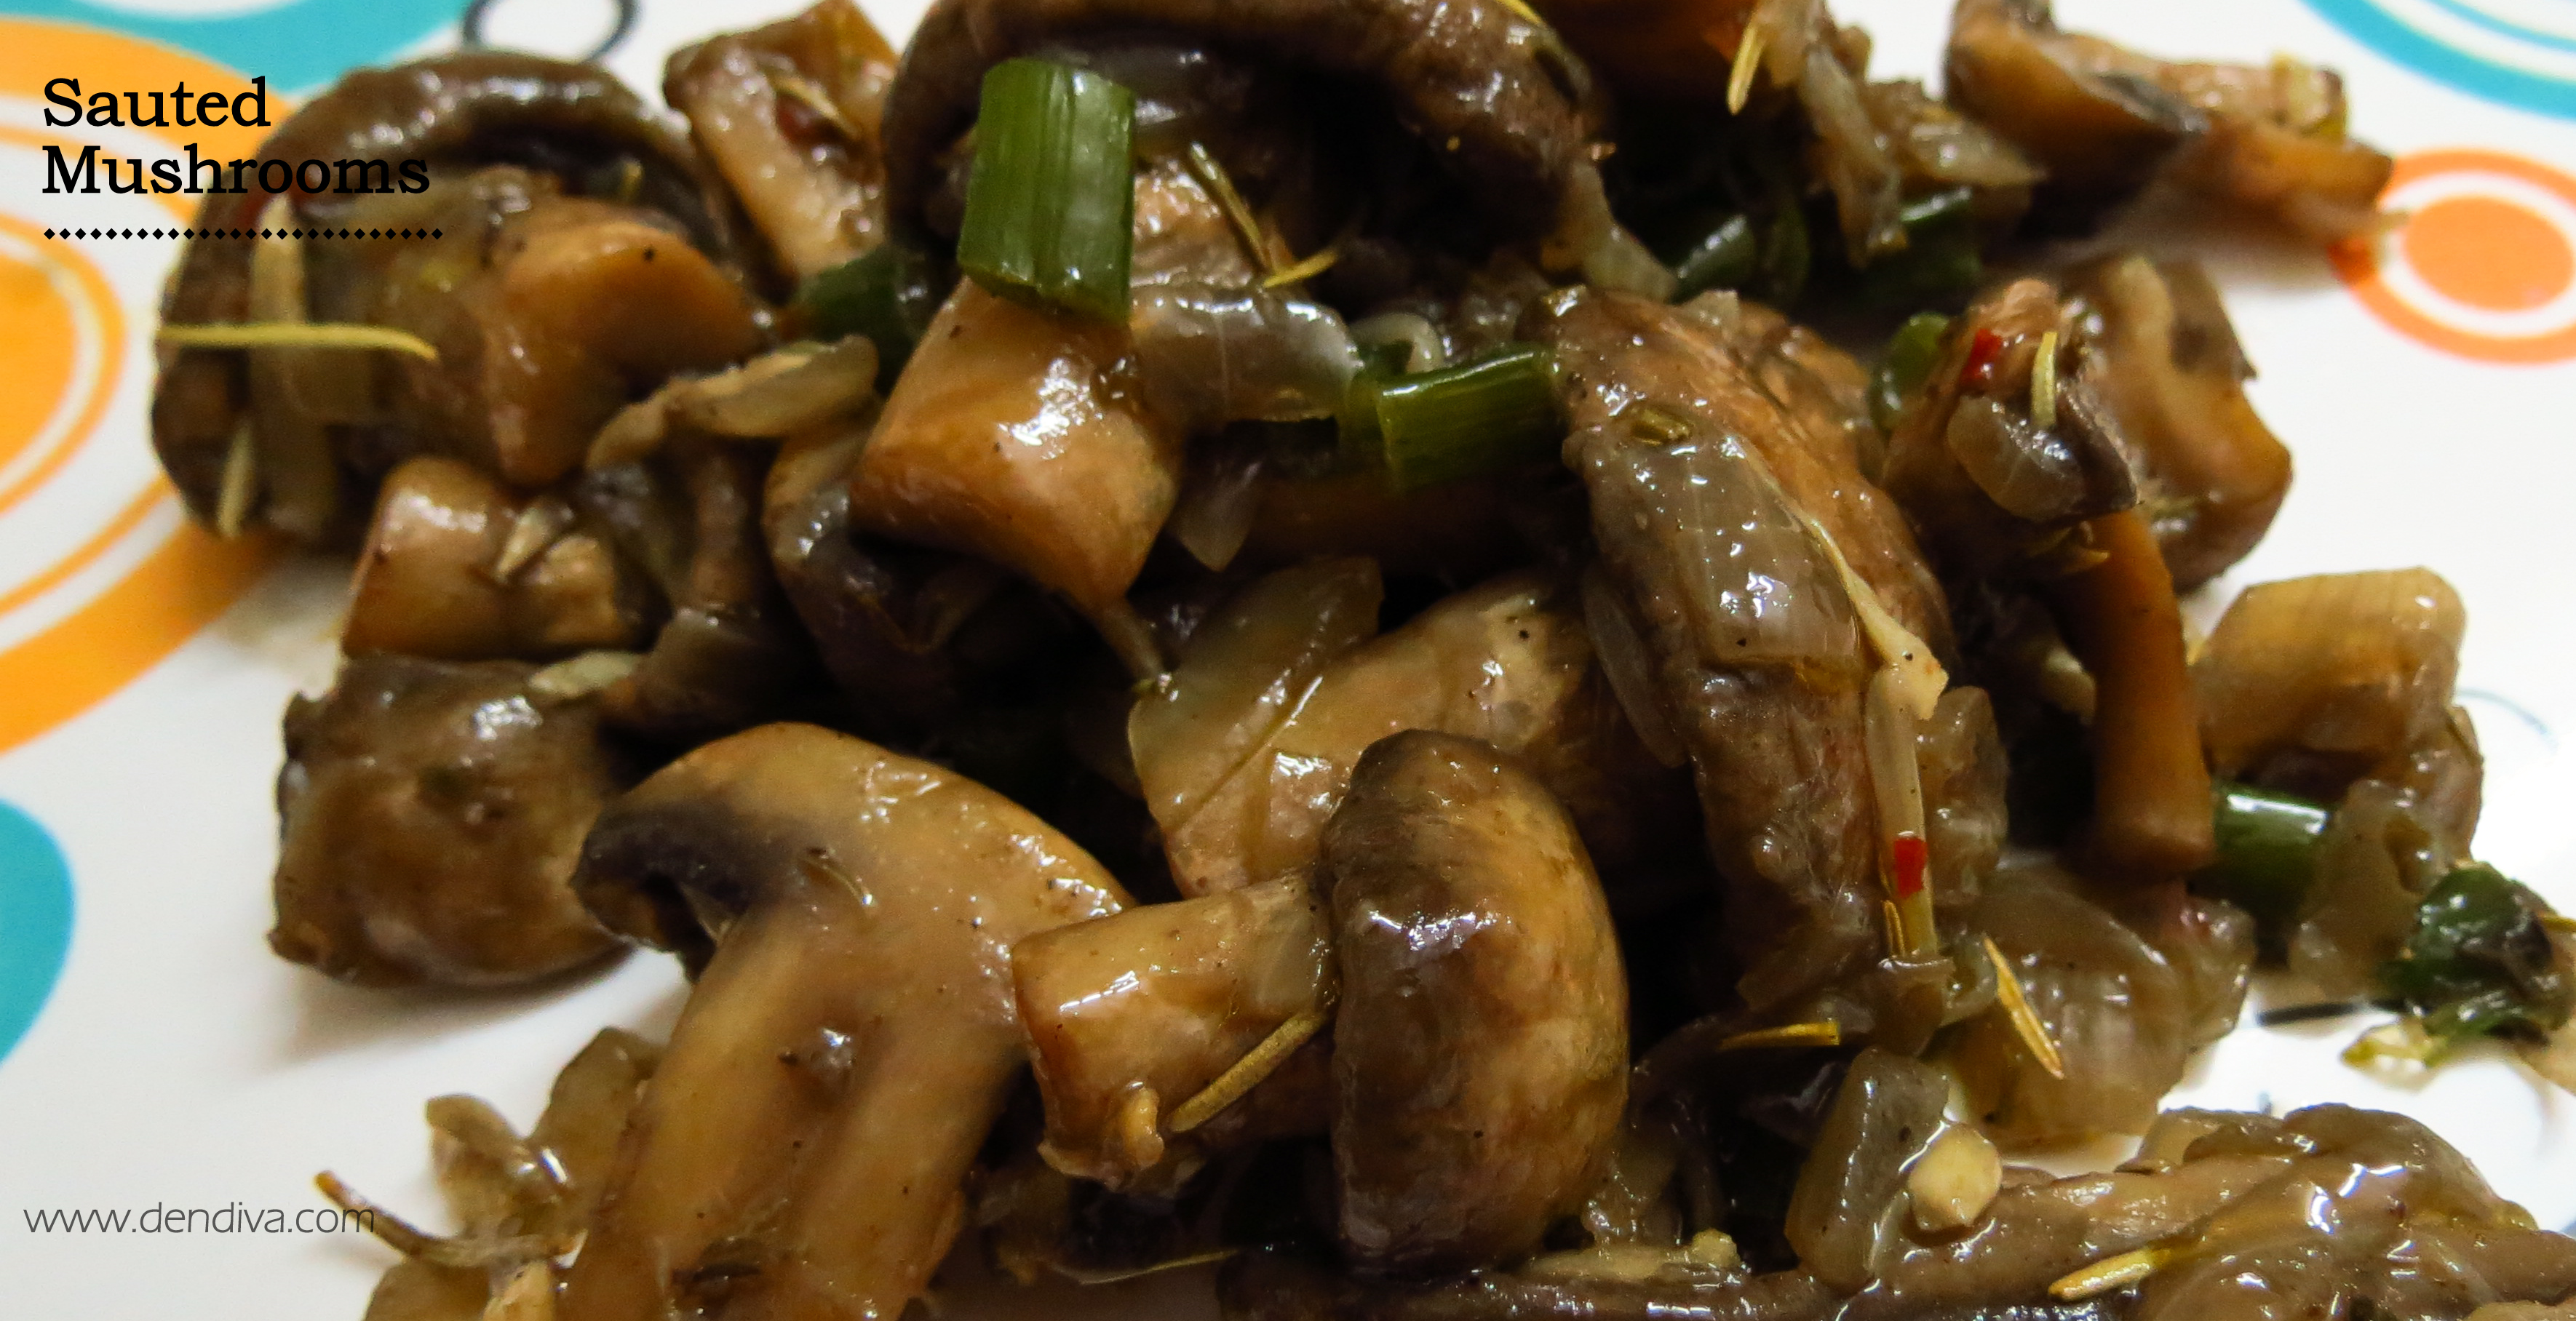 Sauted Mushrooms Recipe